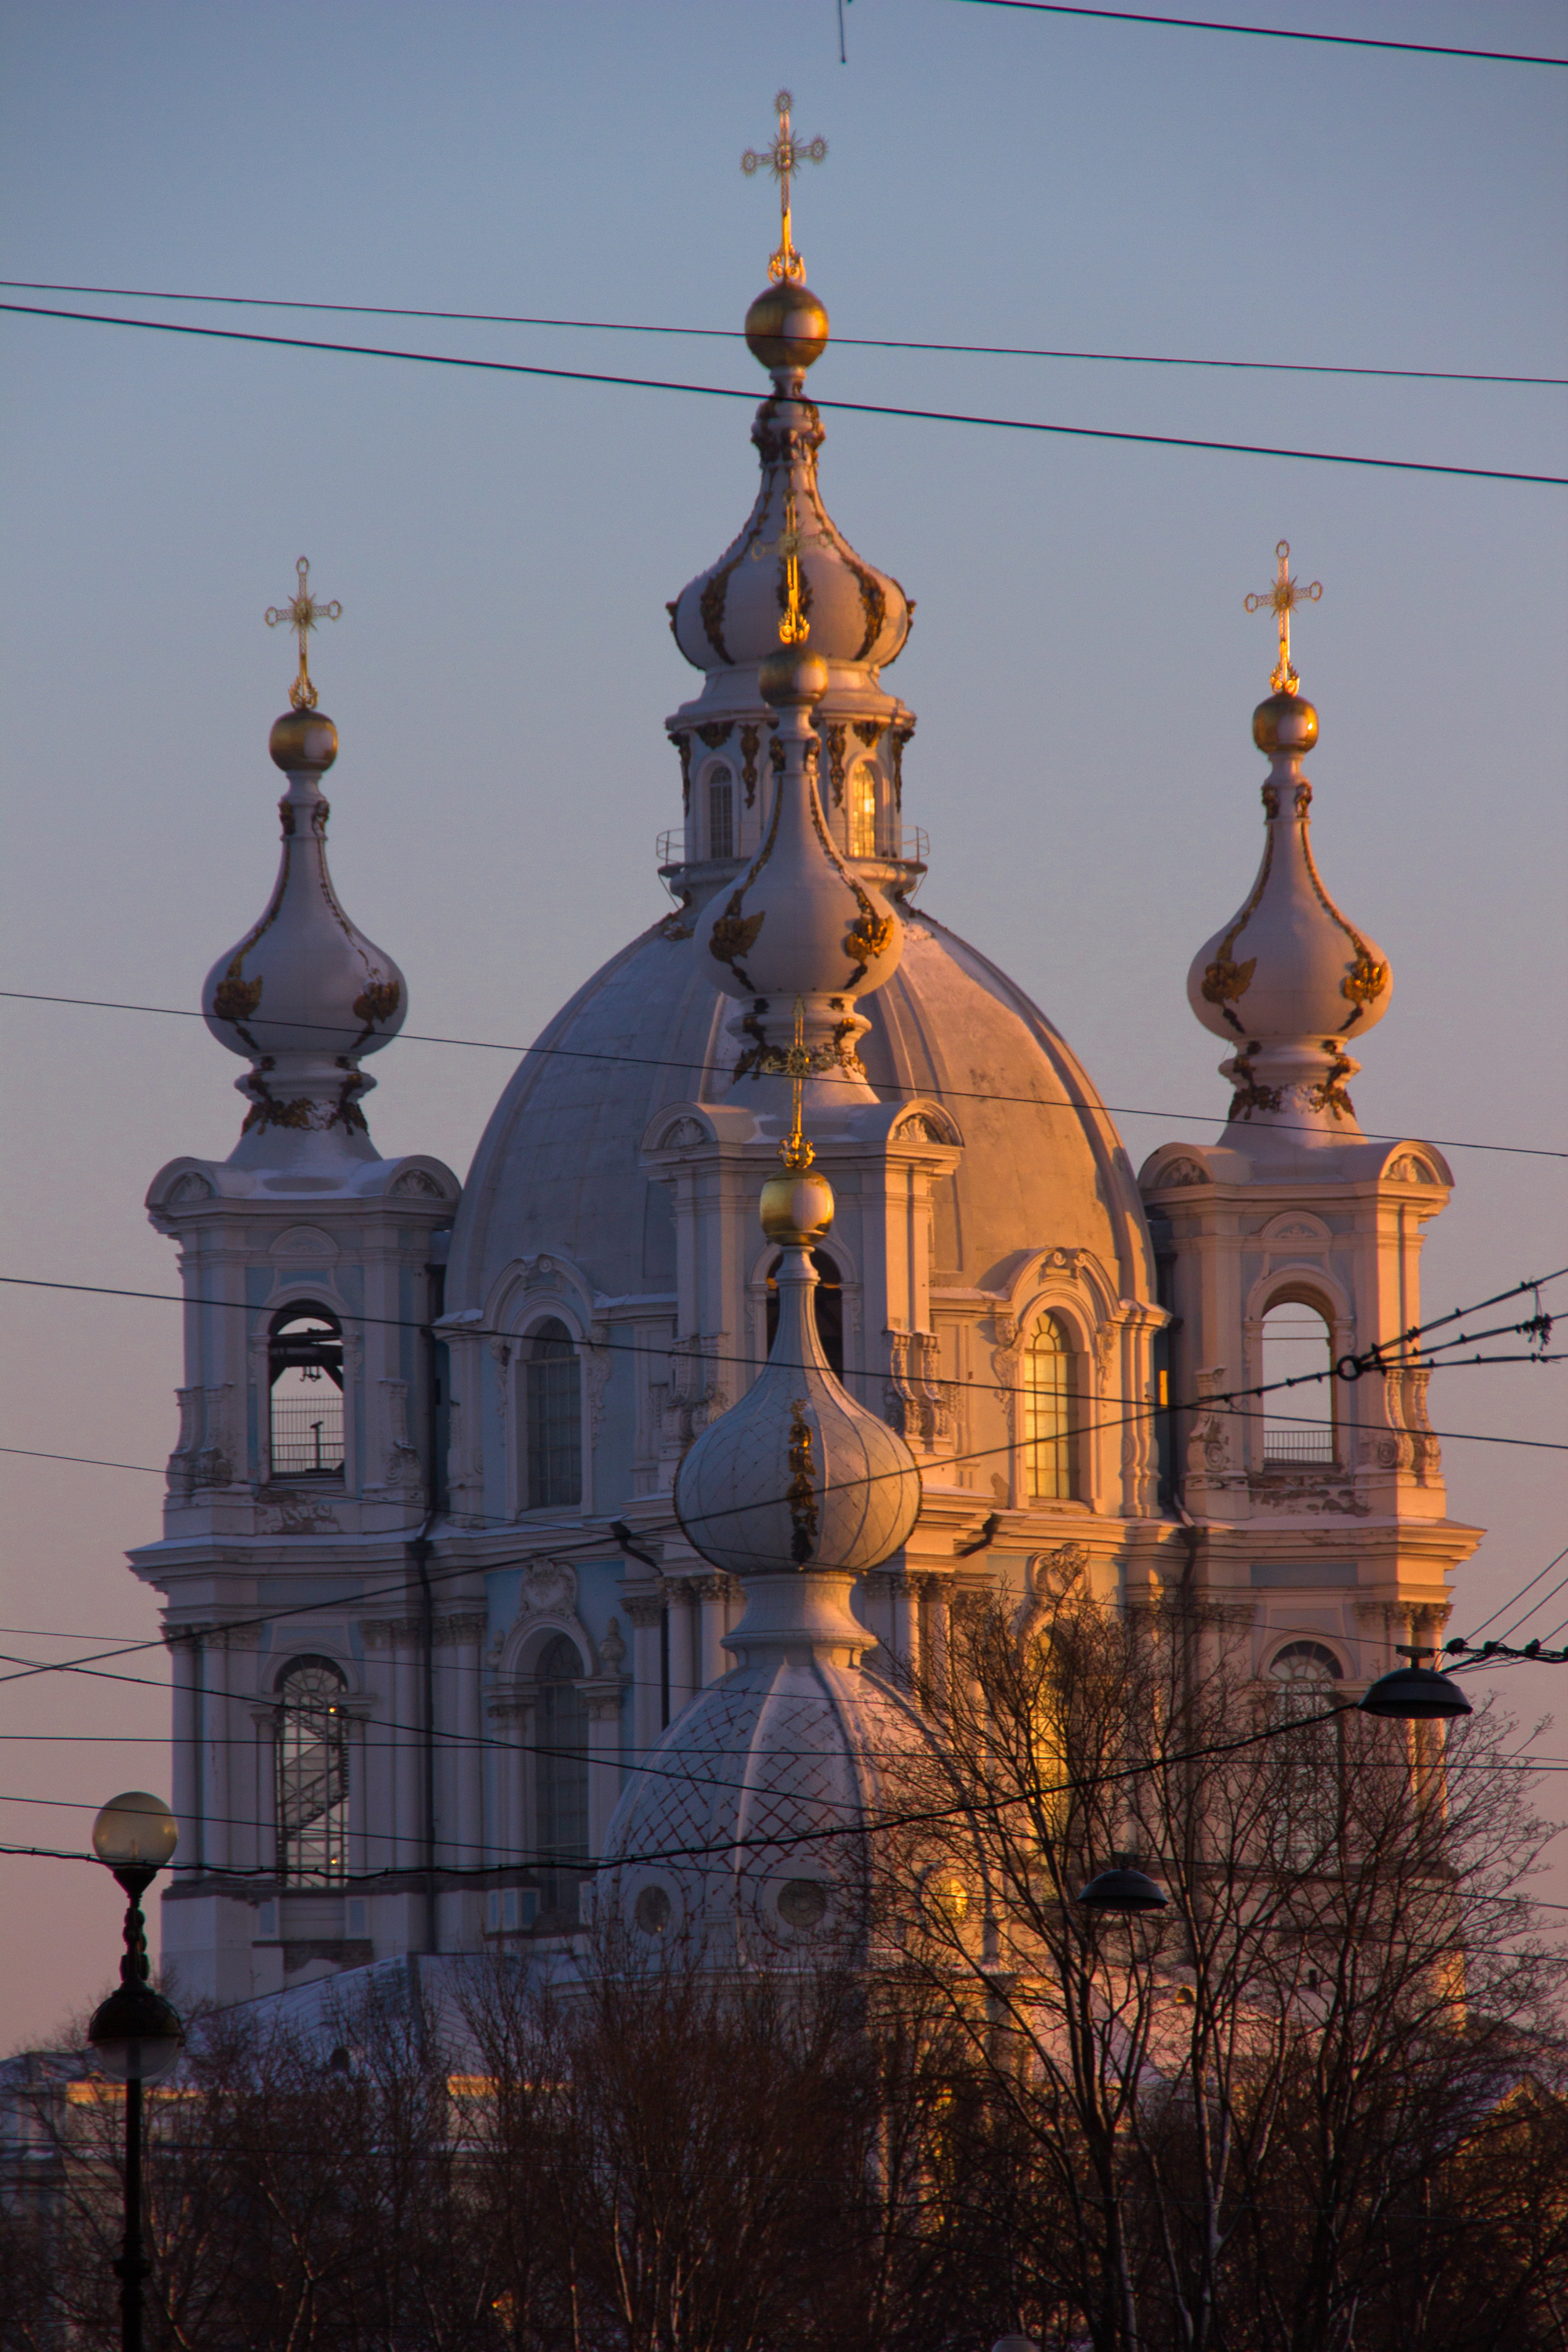 Smolny Cathedral, 2015, Outdoor, Tourism, Sunset, HQ Photo